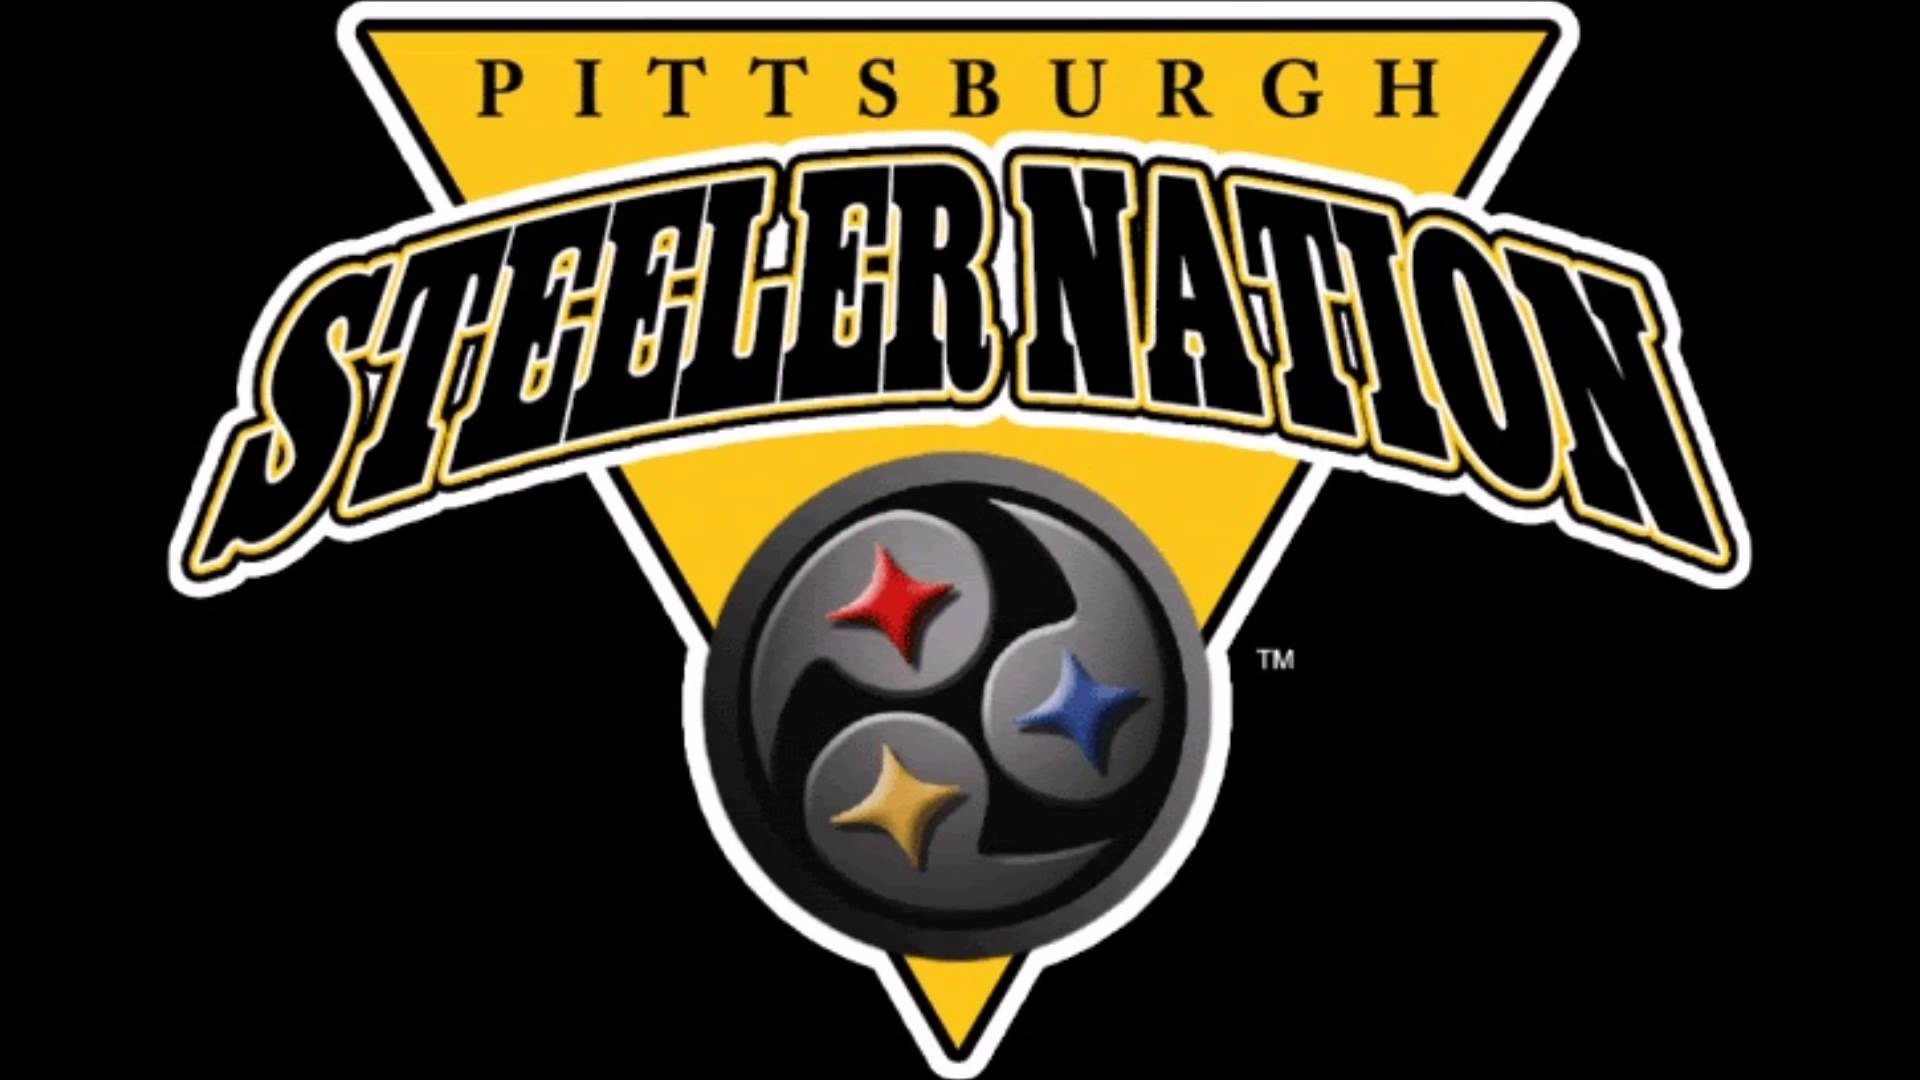 Res: 1920x1080, Pittsburgh-Steelers-Wallpapers-3